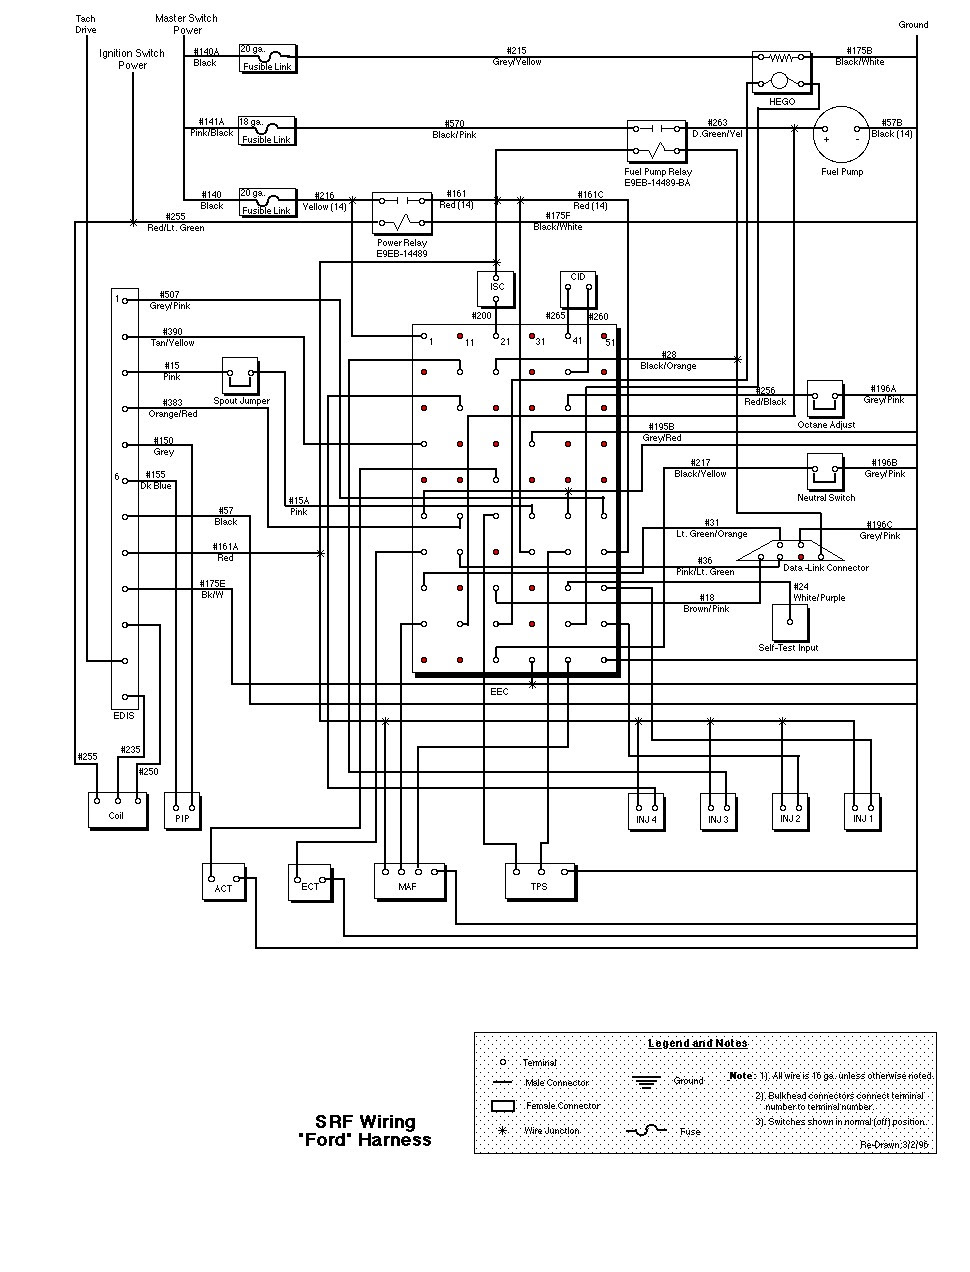 [DIAGRAM] 1982 Ford L8000 Wiring Diagram FULL Version HD